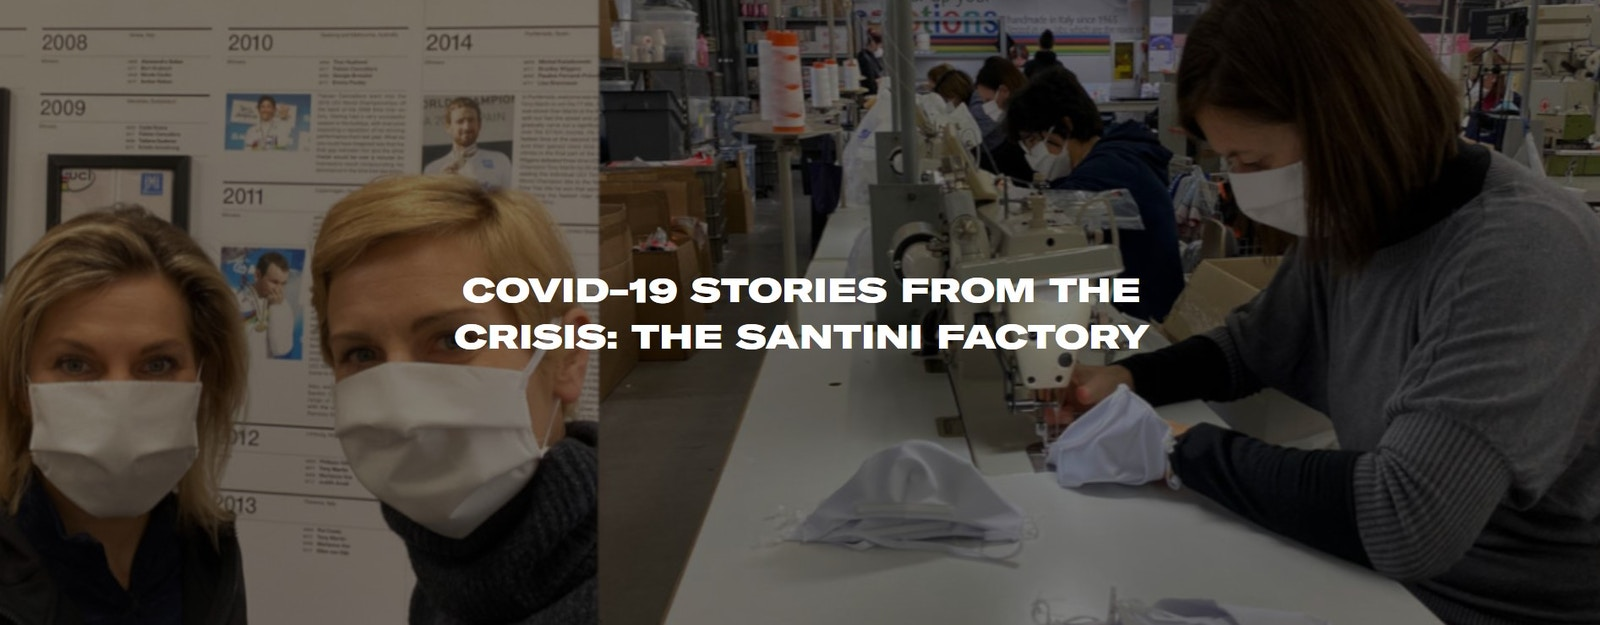 Santini - Covid-19 stories from the crisis: The Santini Factory